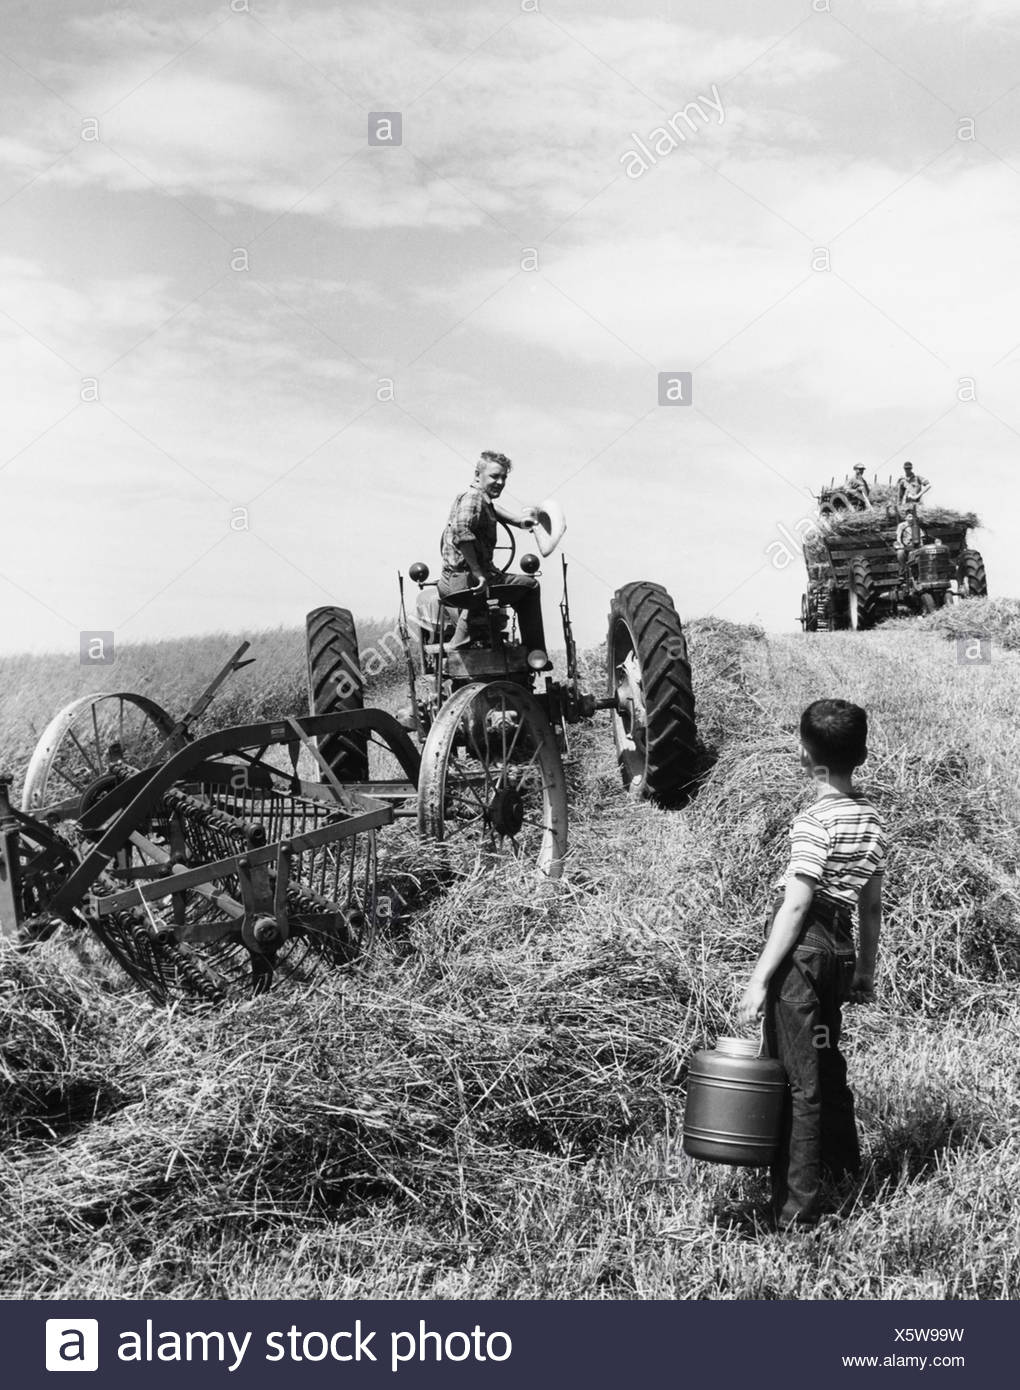 Young boy brings water to his father who is working the farm fields on a tractor - Stock Image